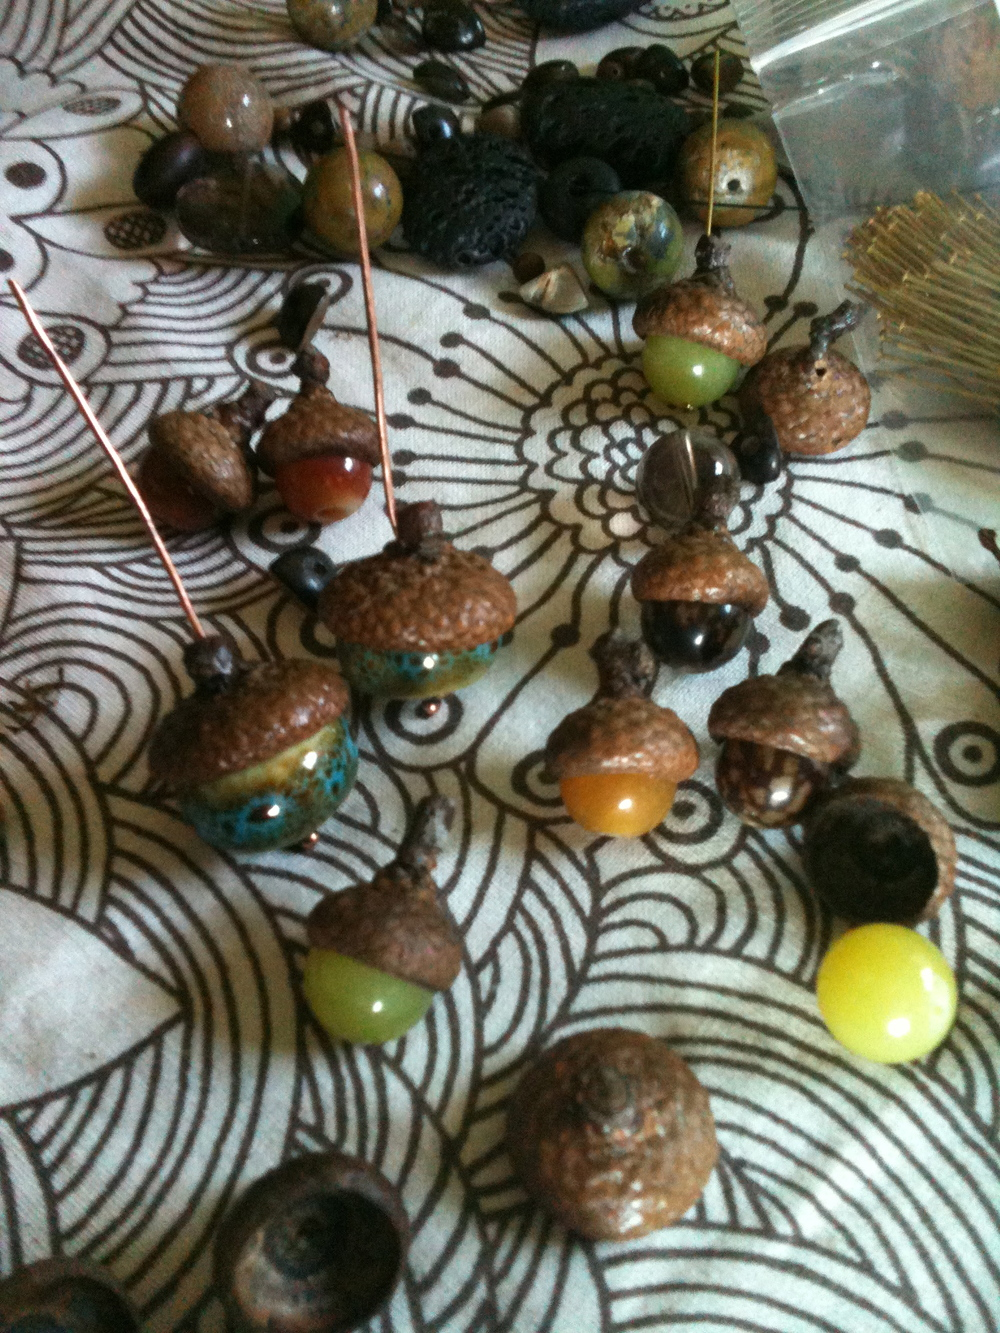 Putting together acorn earrings